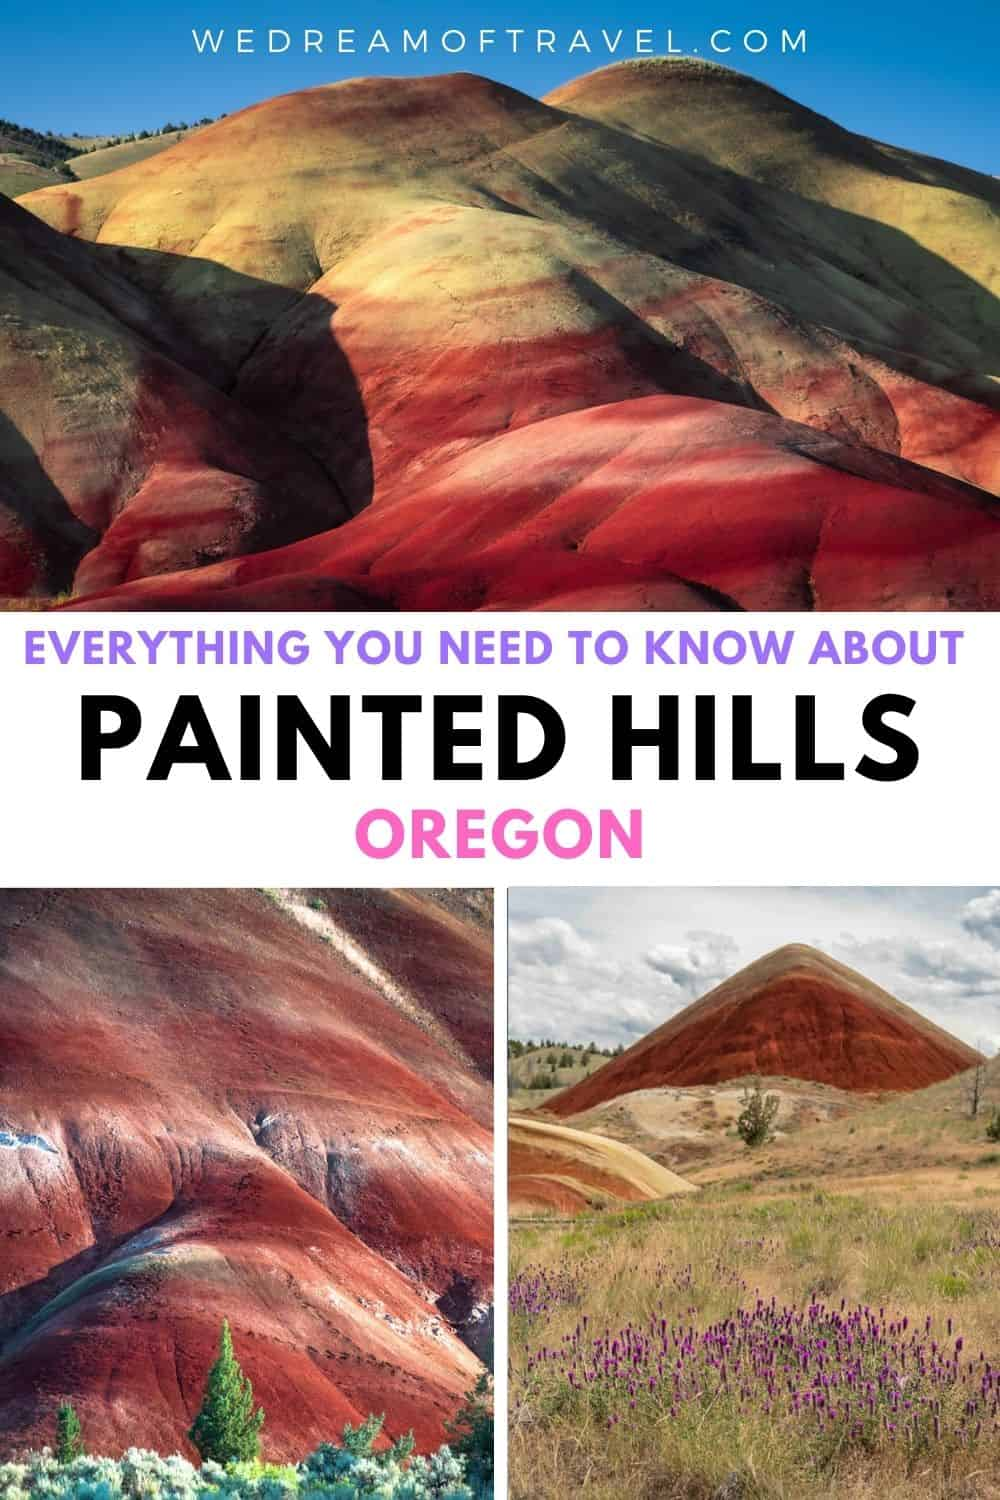 Located within John Day Fossil Beds National Monument, the Painted Hills of Oregon are considered one of the seven wonders of Oregon.  And it's easy to see why!  With otherworldly colorful hills, a visit to the Painted Hills is unlike anything else.  This guide will help you plan your perfect trip to the Painted Hills of Oregon.